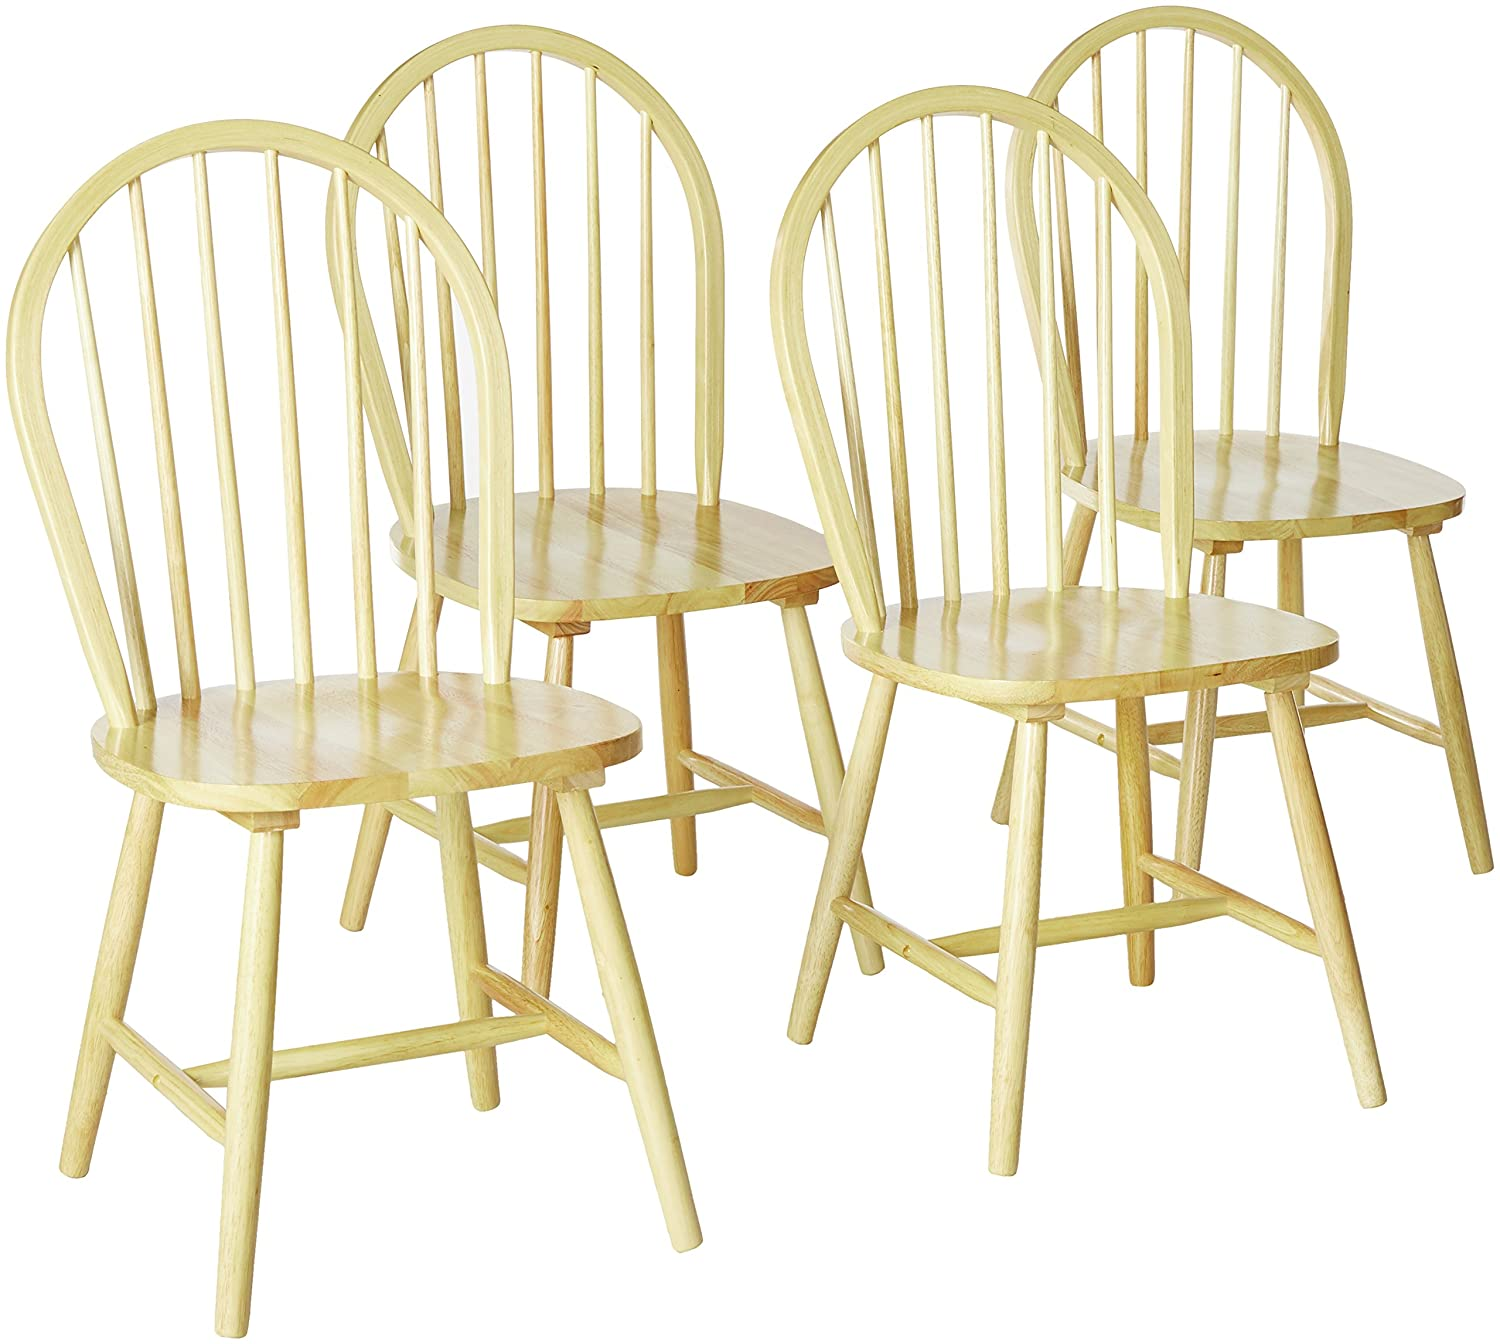 Hesperia Windsor Dining Side Chairs Natural Brown and White (Set of 4) Coaster Home Furnishings 4129